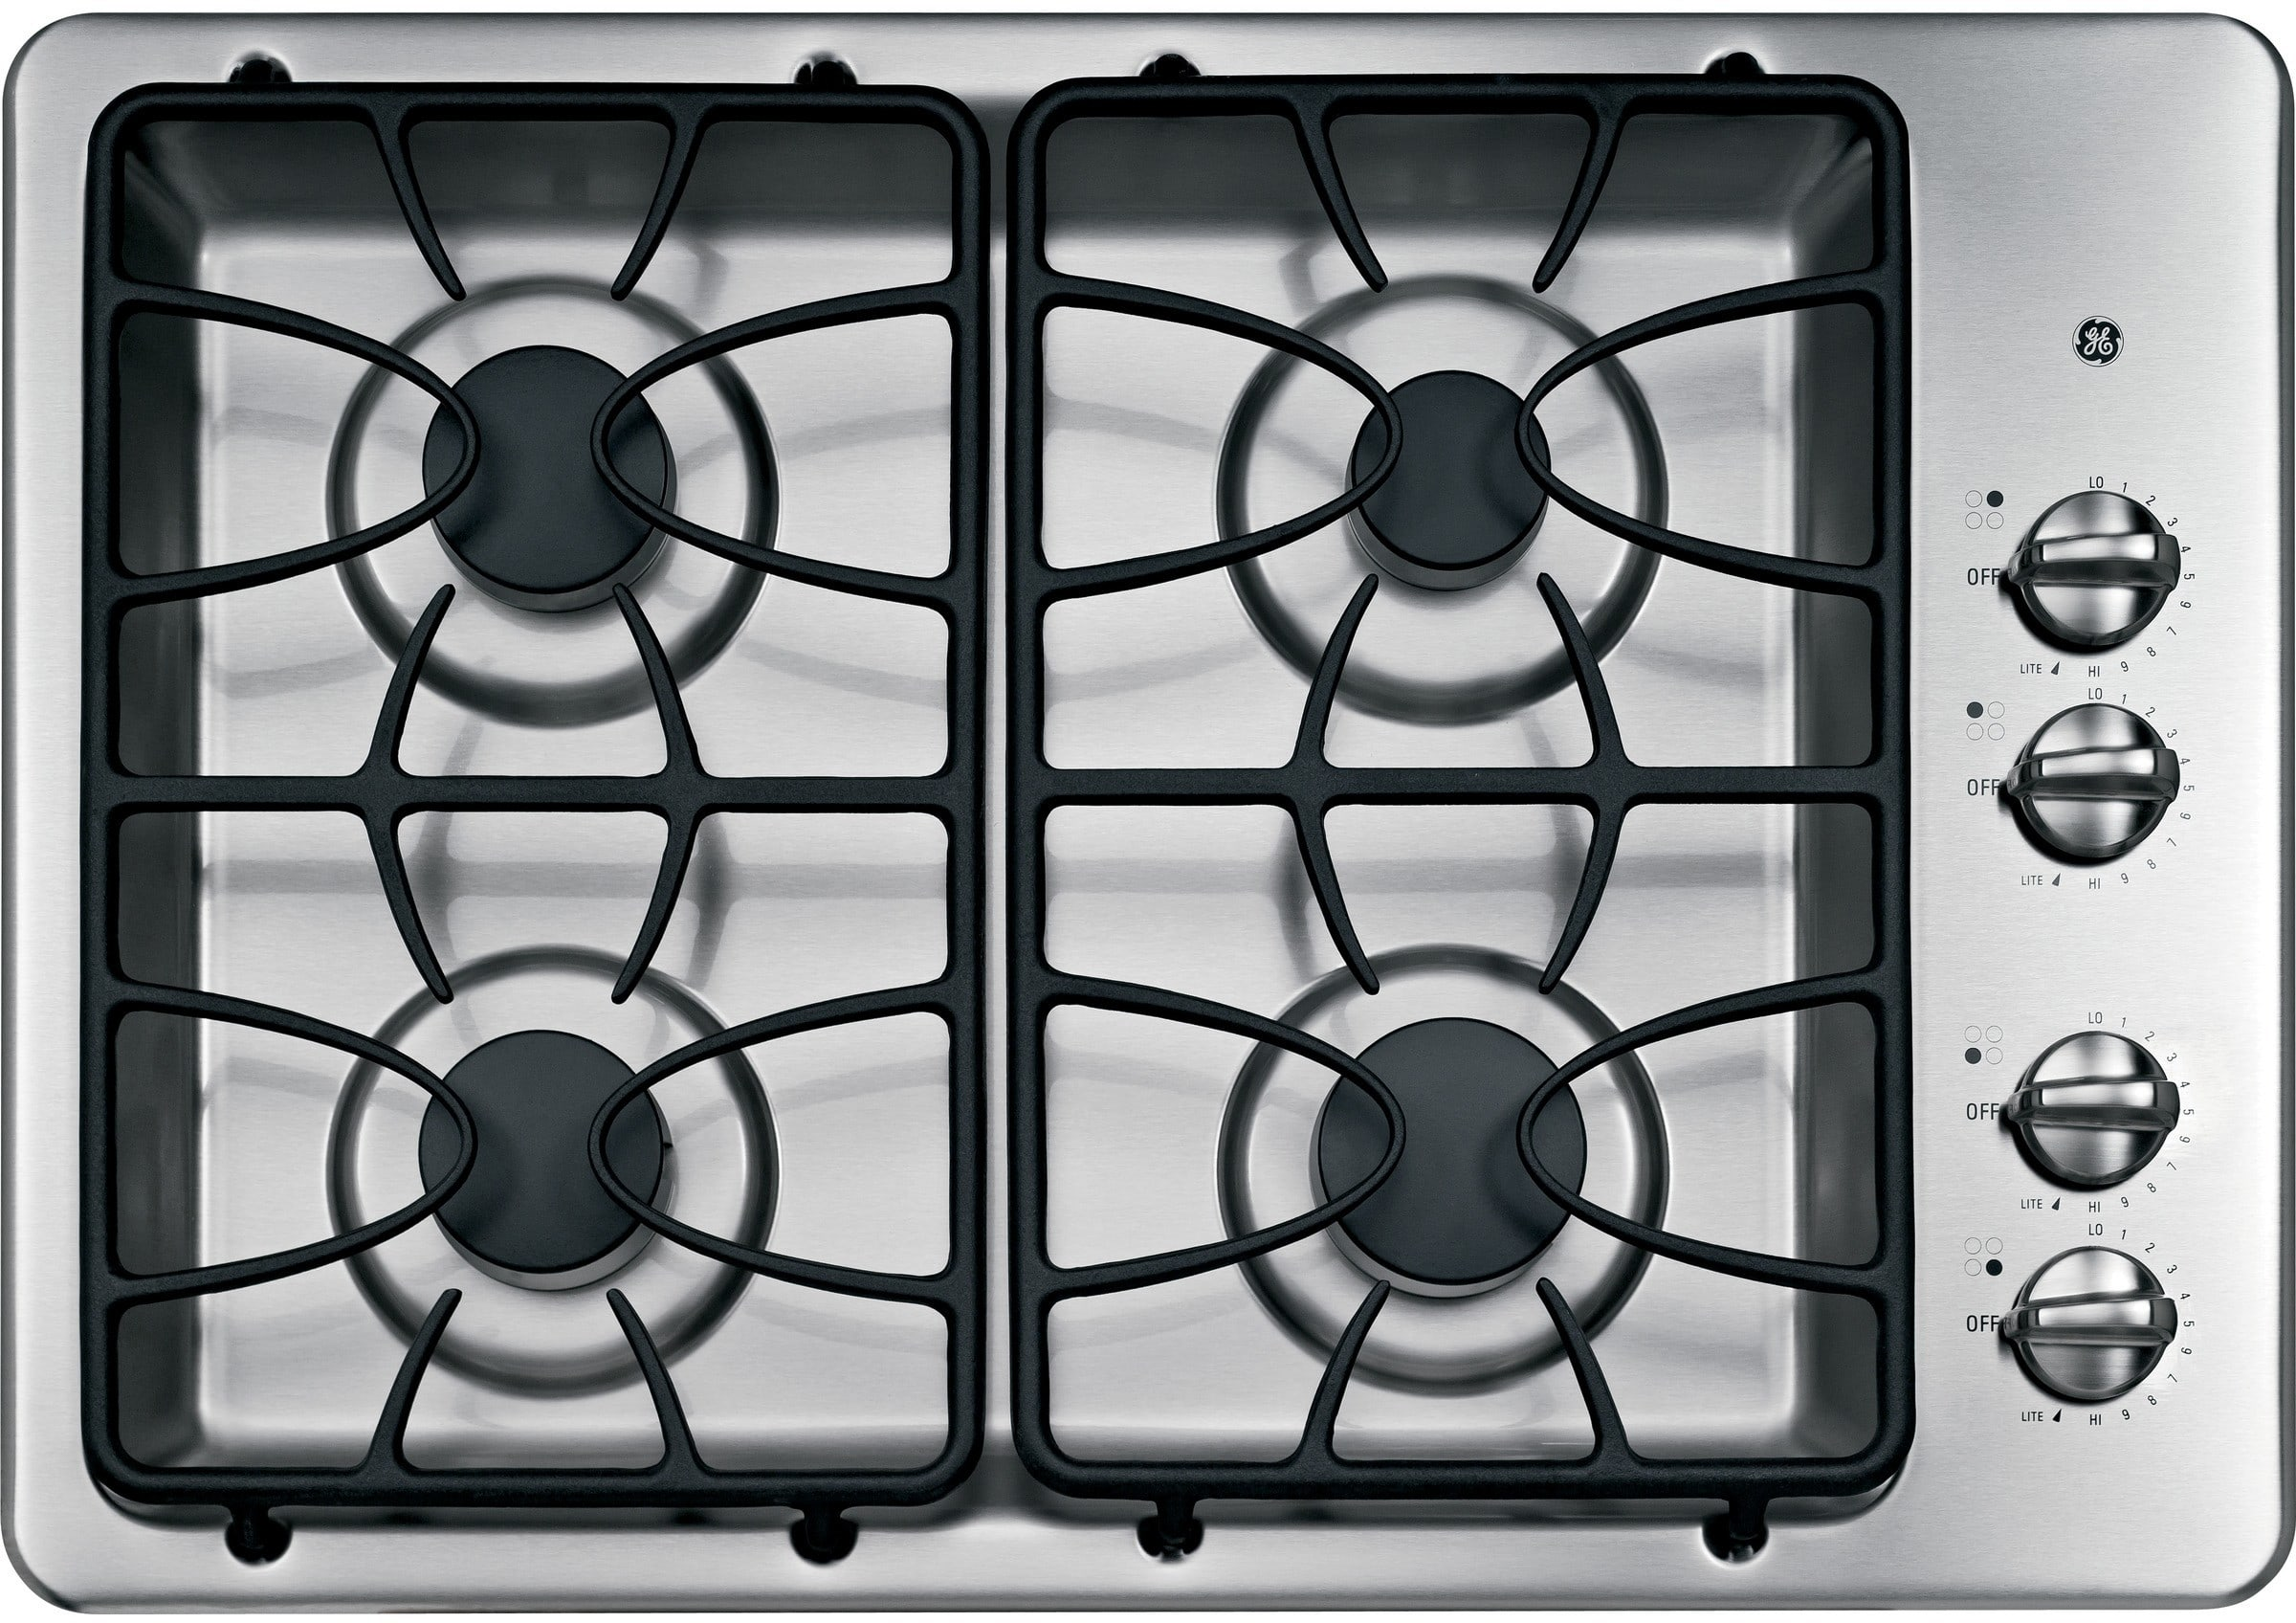 Ge Jgp329setss 30 Inch Gas Cooktop With 4 Sealed Burners